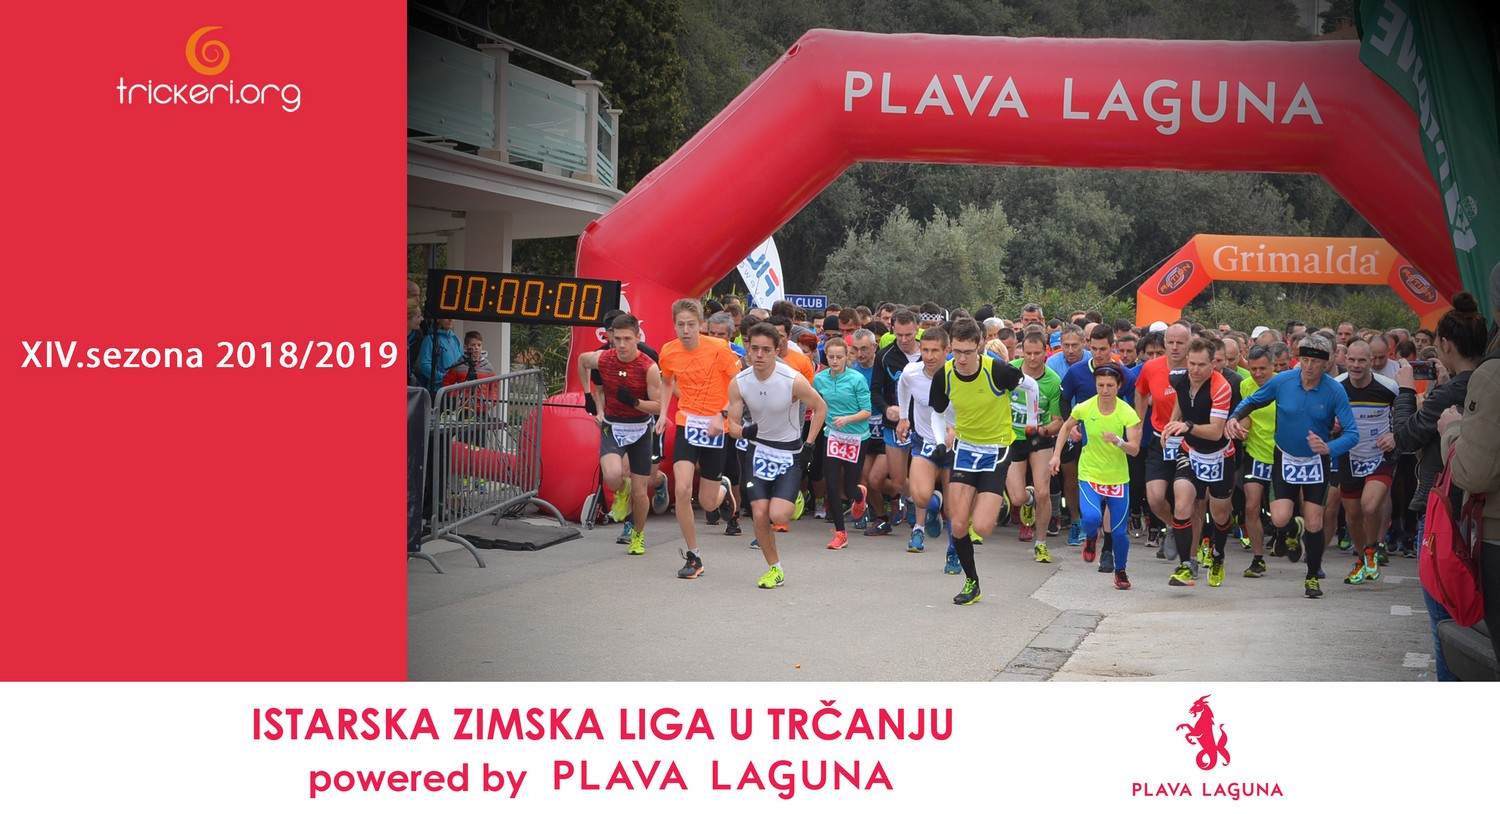 Istrian Winter Running League powered by Plava Laguna